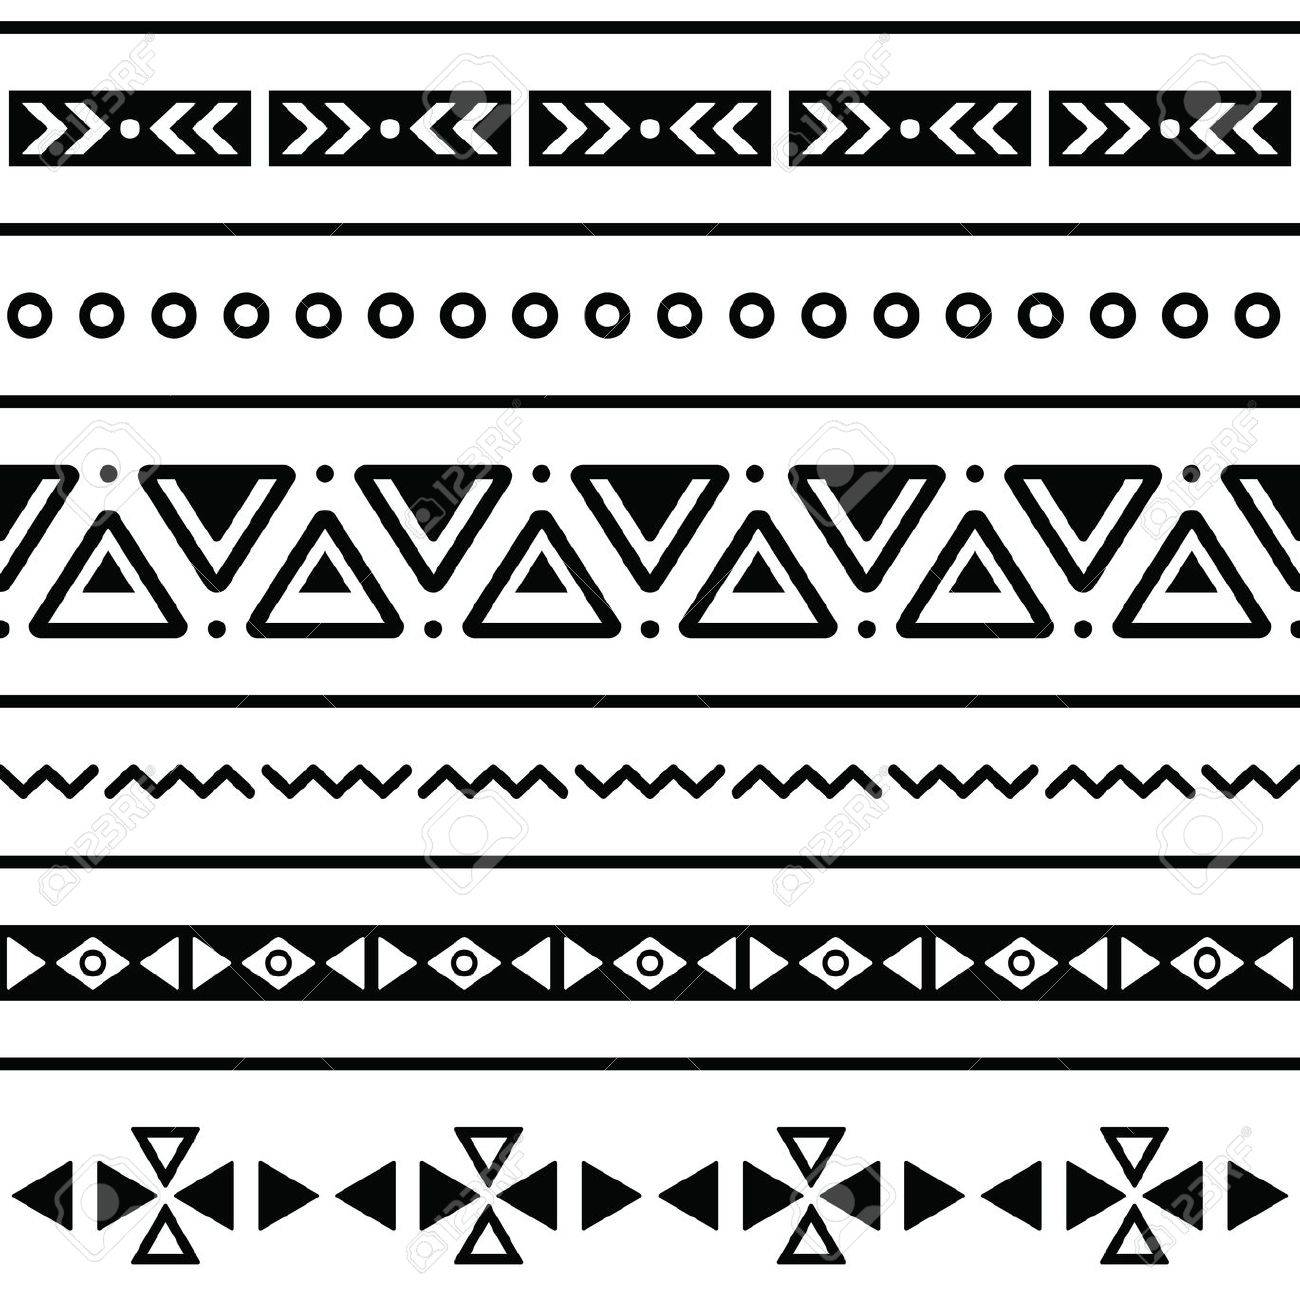 Background geometric mexican patterns seamless vector zigzag maya - Aztec Seamless Pattern Tribal Black And White Background Stock Vector 19482145